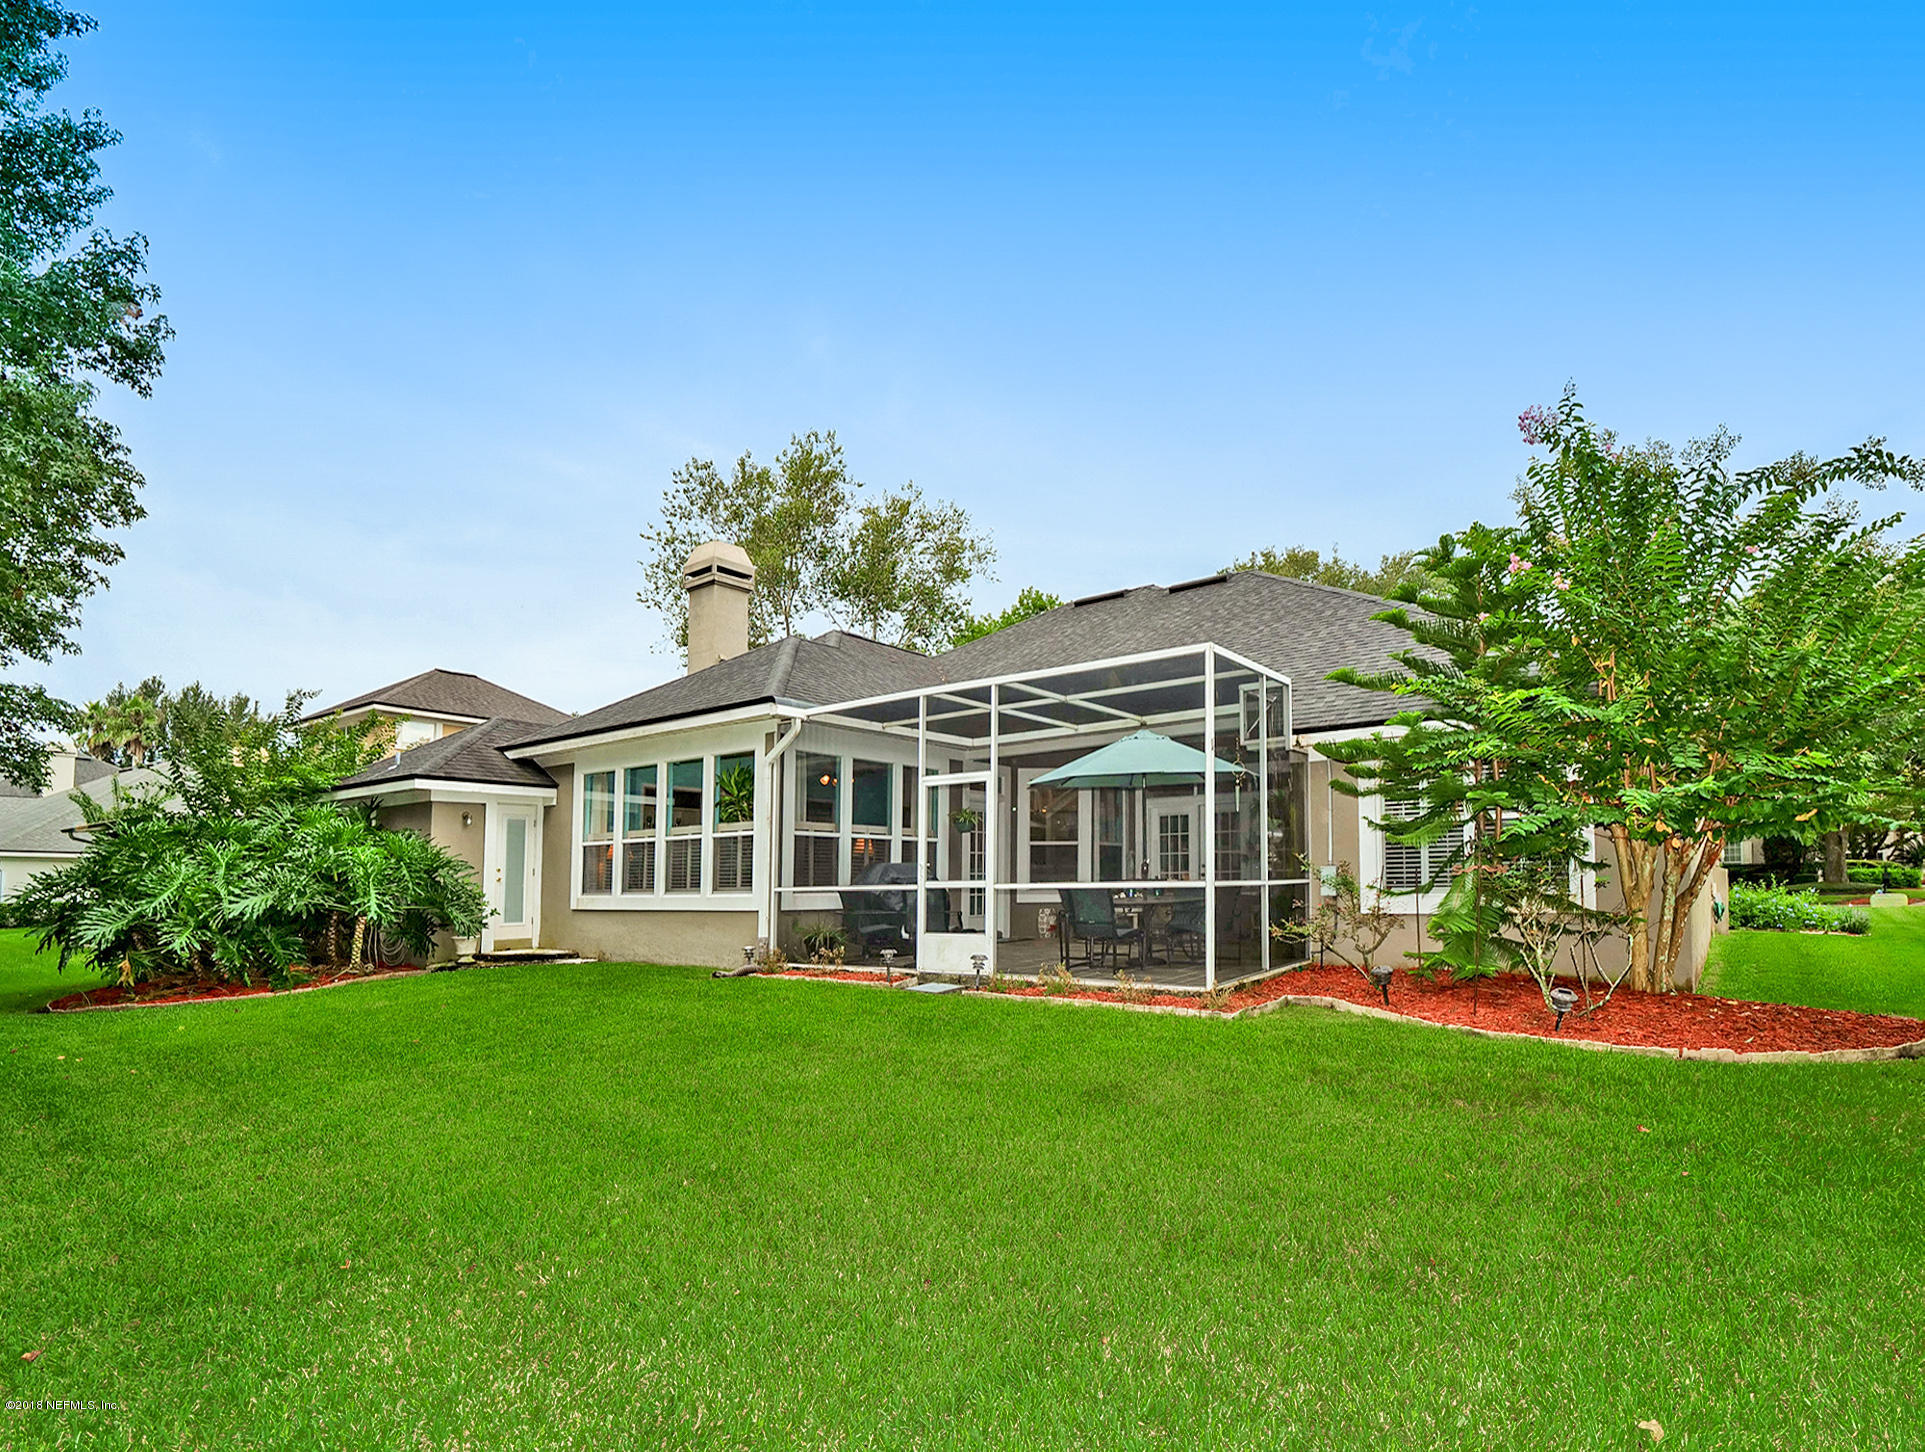 3947 CATTAIL POND, JACKSONVILLE, FLORIDA 32224, 4 Bedrooms Bedrooms, ,3 BathroomsBathrooms,Residential - single family,For sale,CATTAIL POND,955337